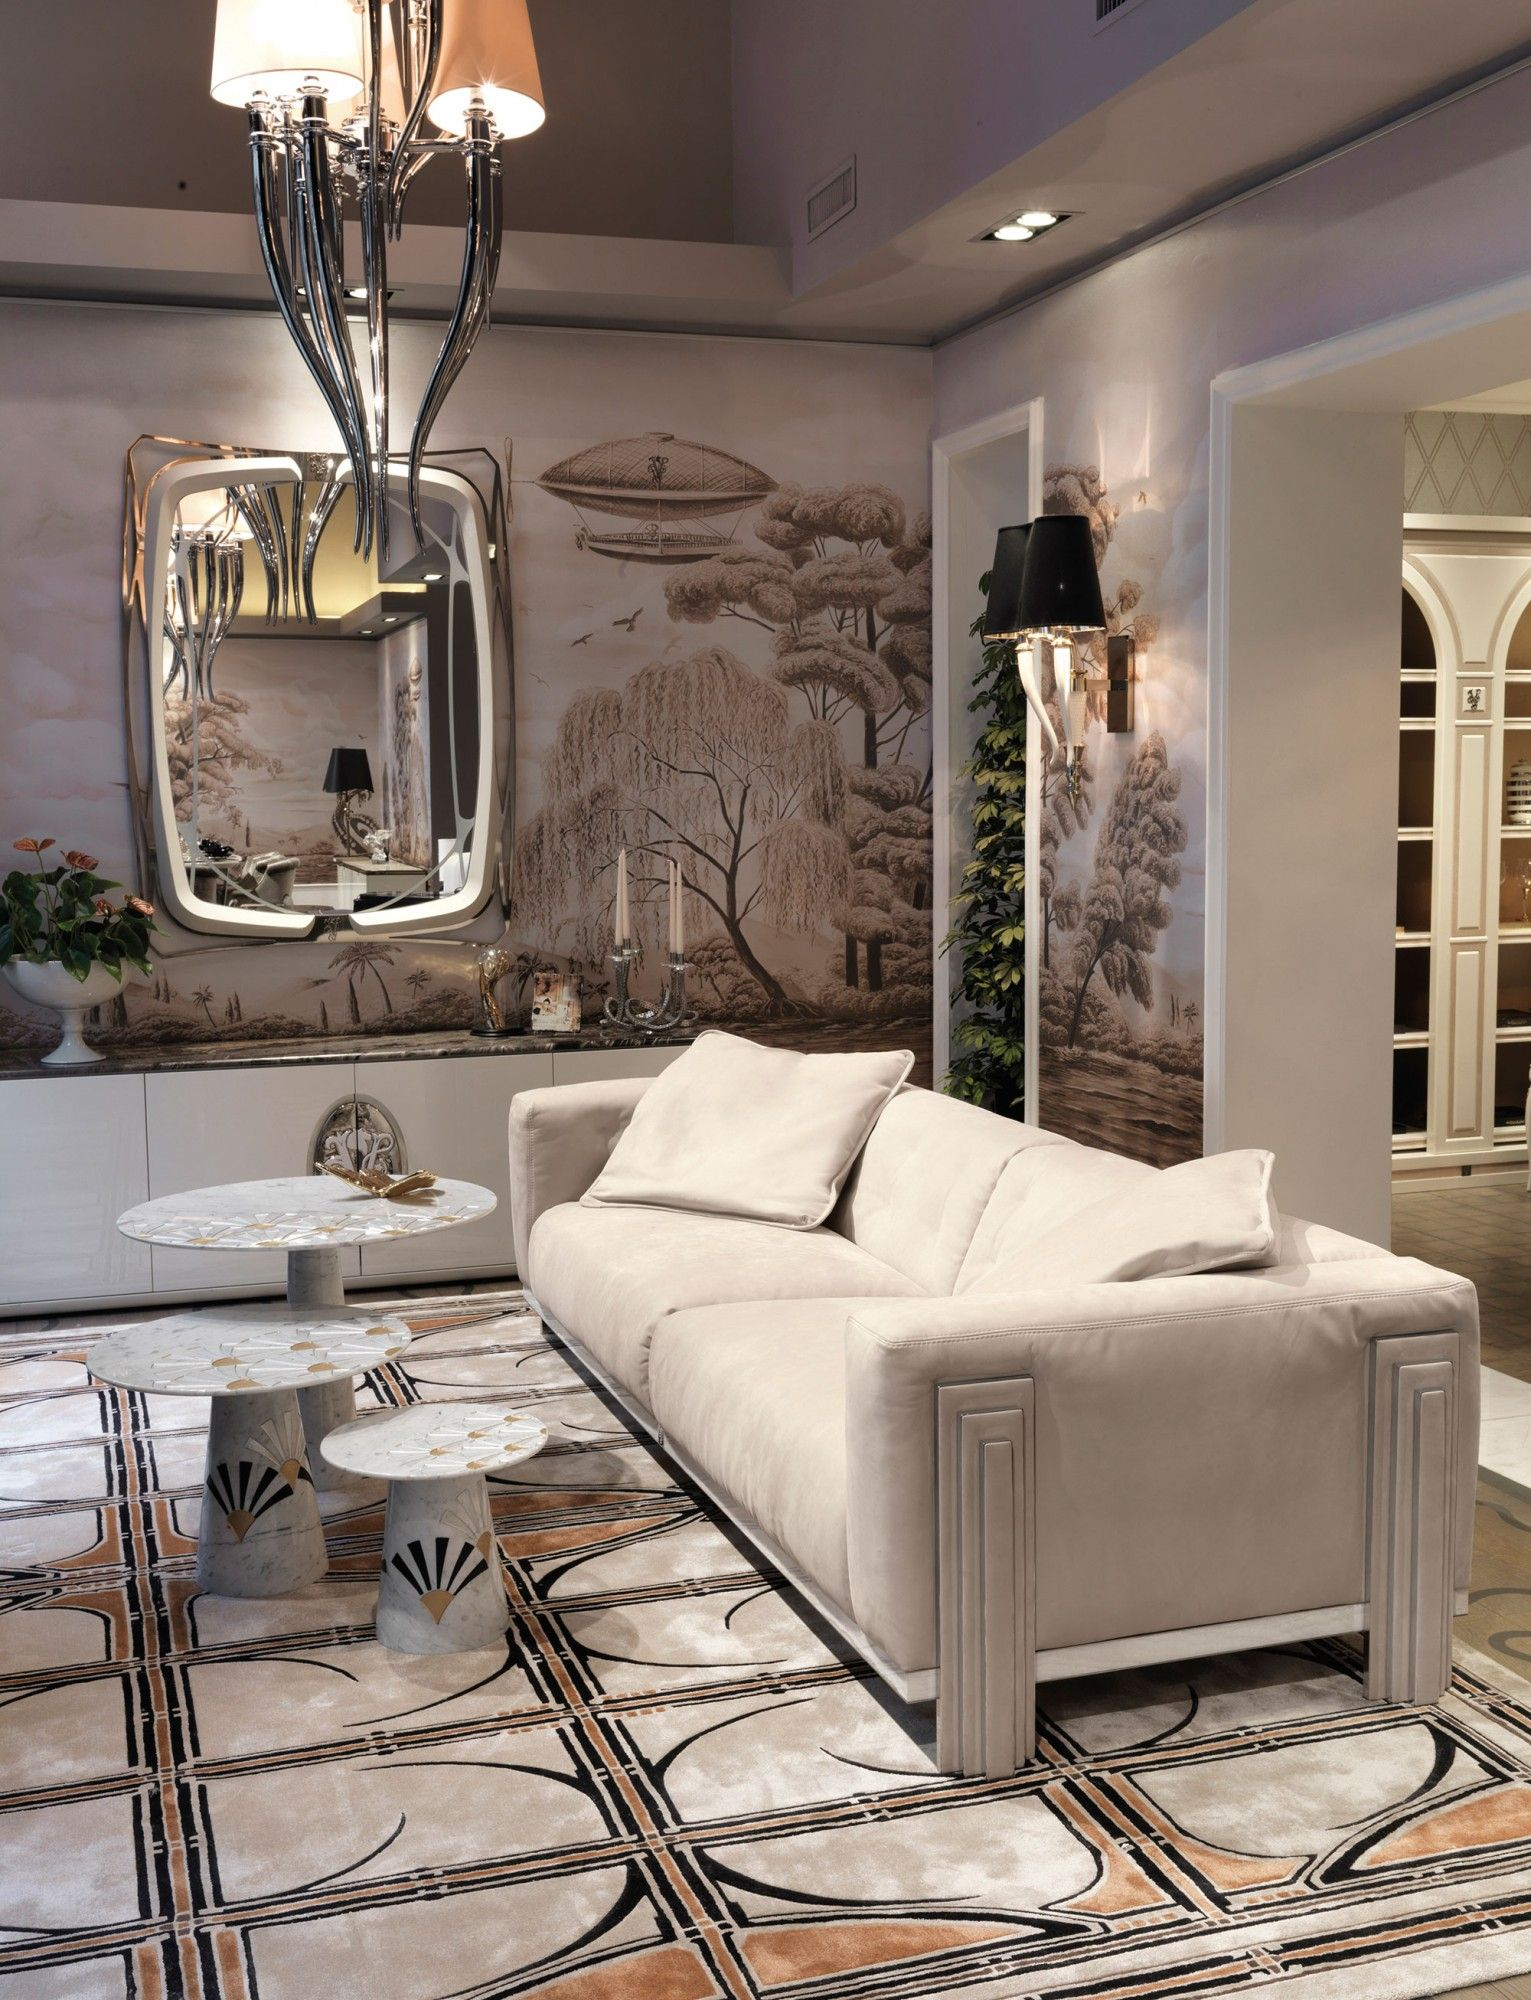 Rooms By Design Furniture Store: Luxury Interior, Living Room Designs